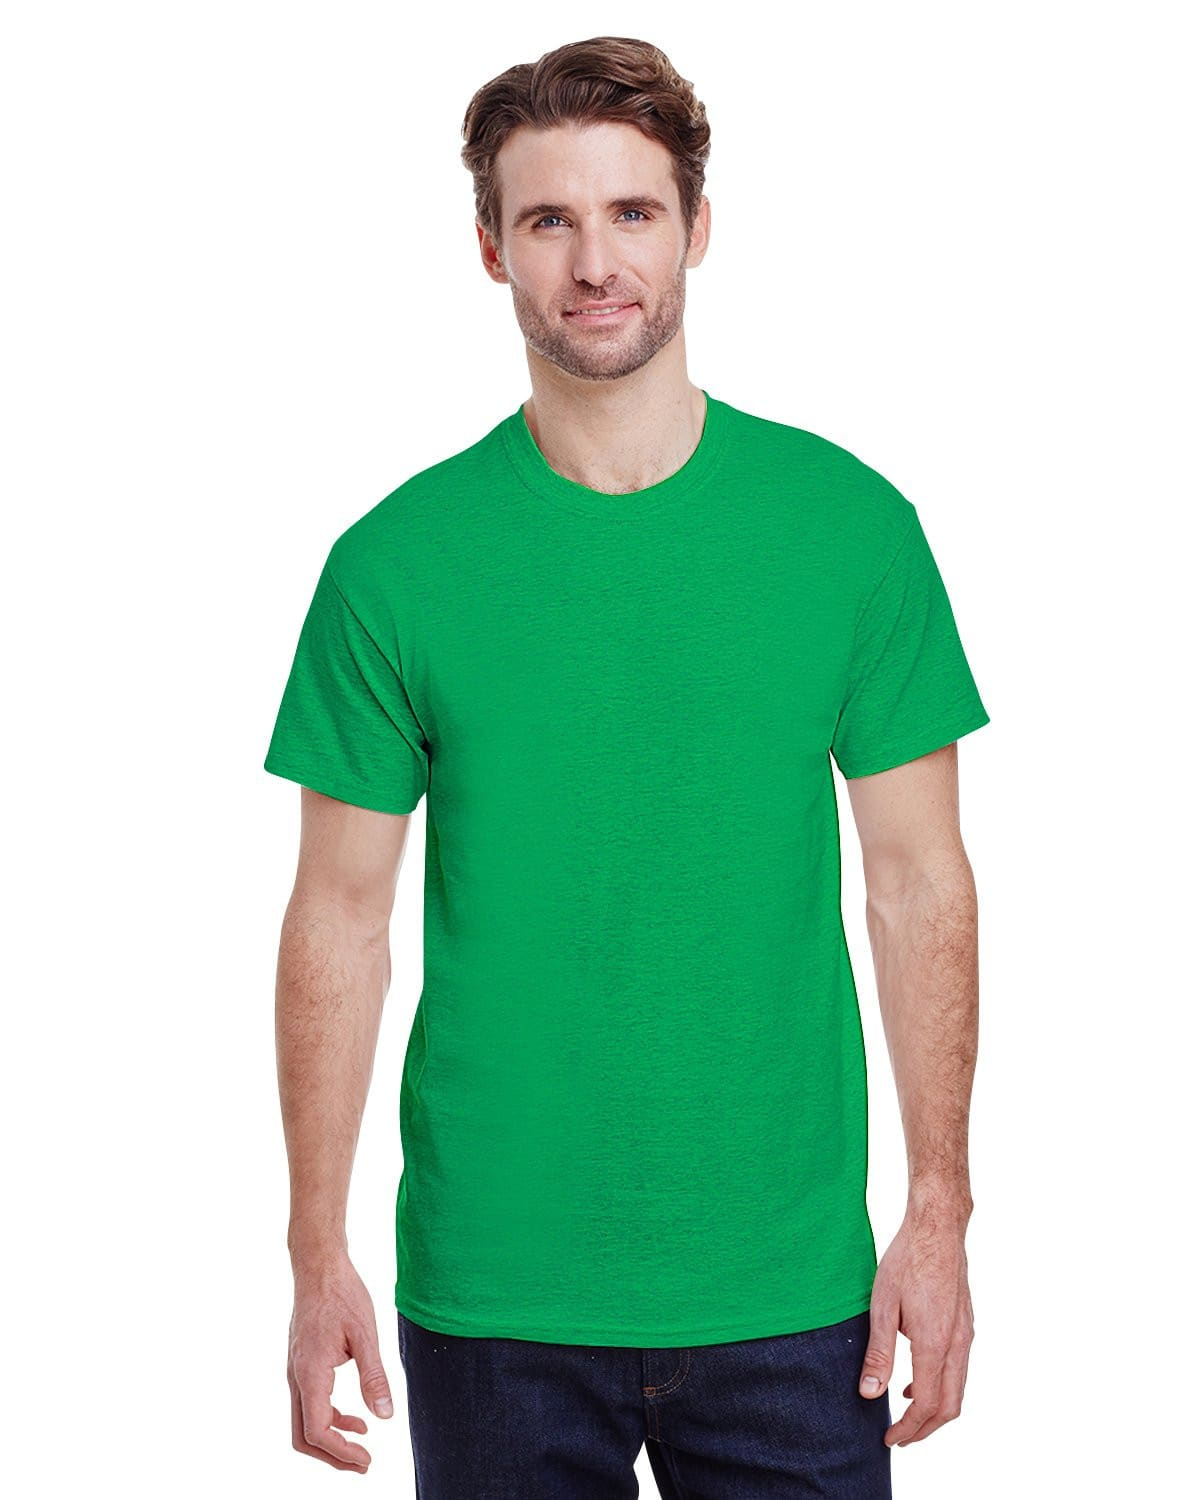 g500-adult-heavy-cotton-5-3oz-t-shirt-large-Large-ANTIQ IRISH GRN-Oasispromos